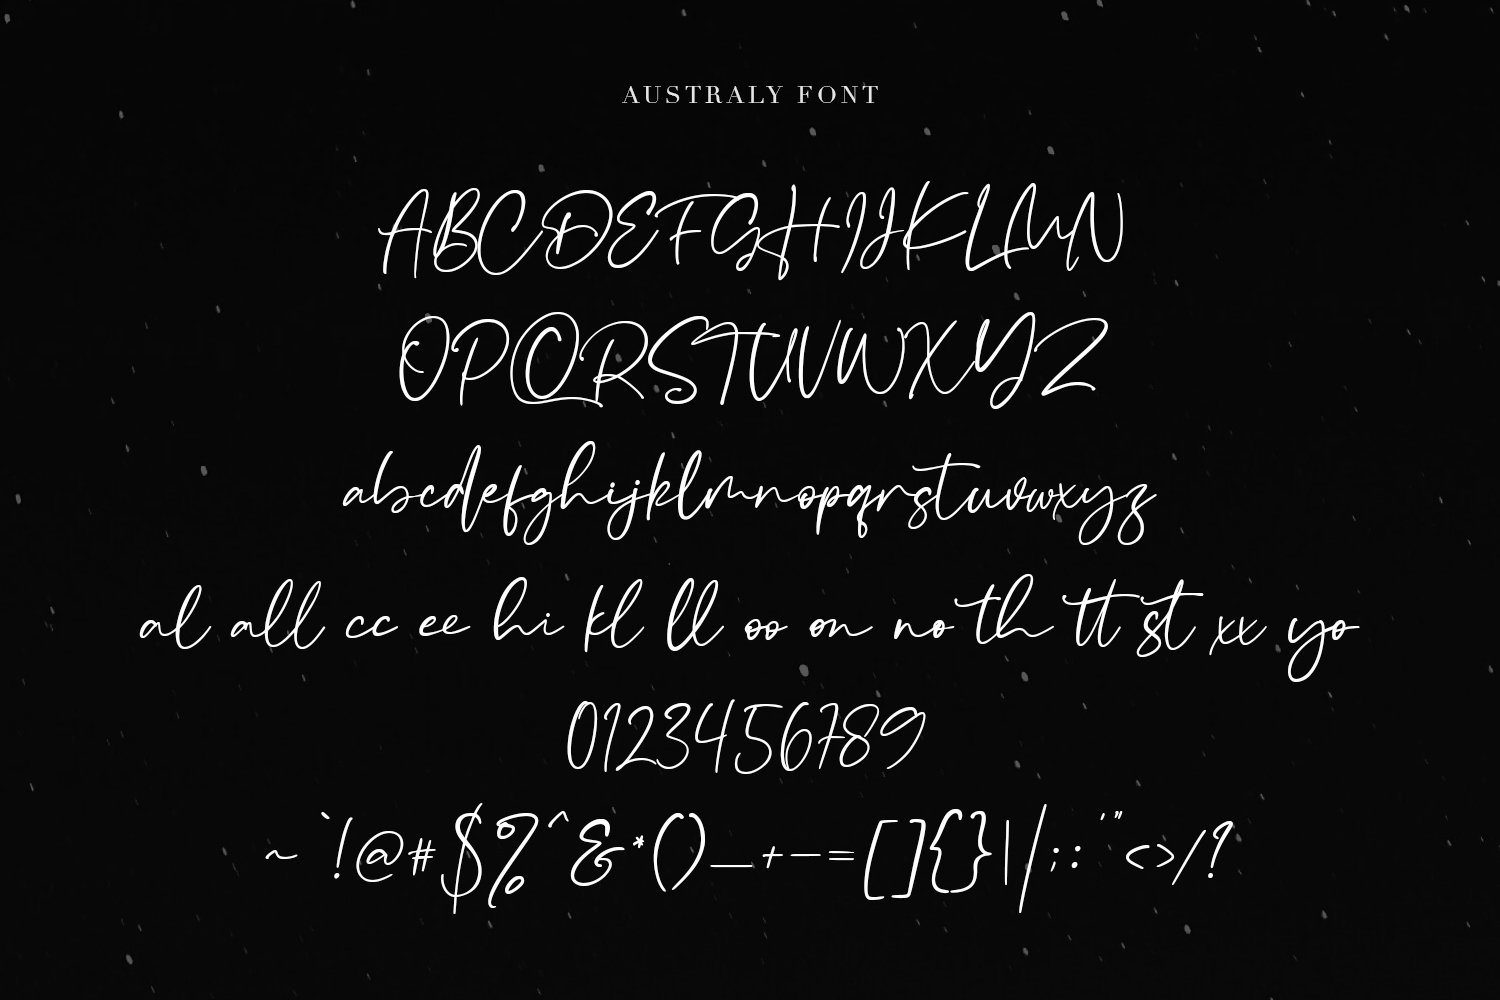 Australy Font example image 6